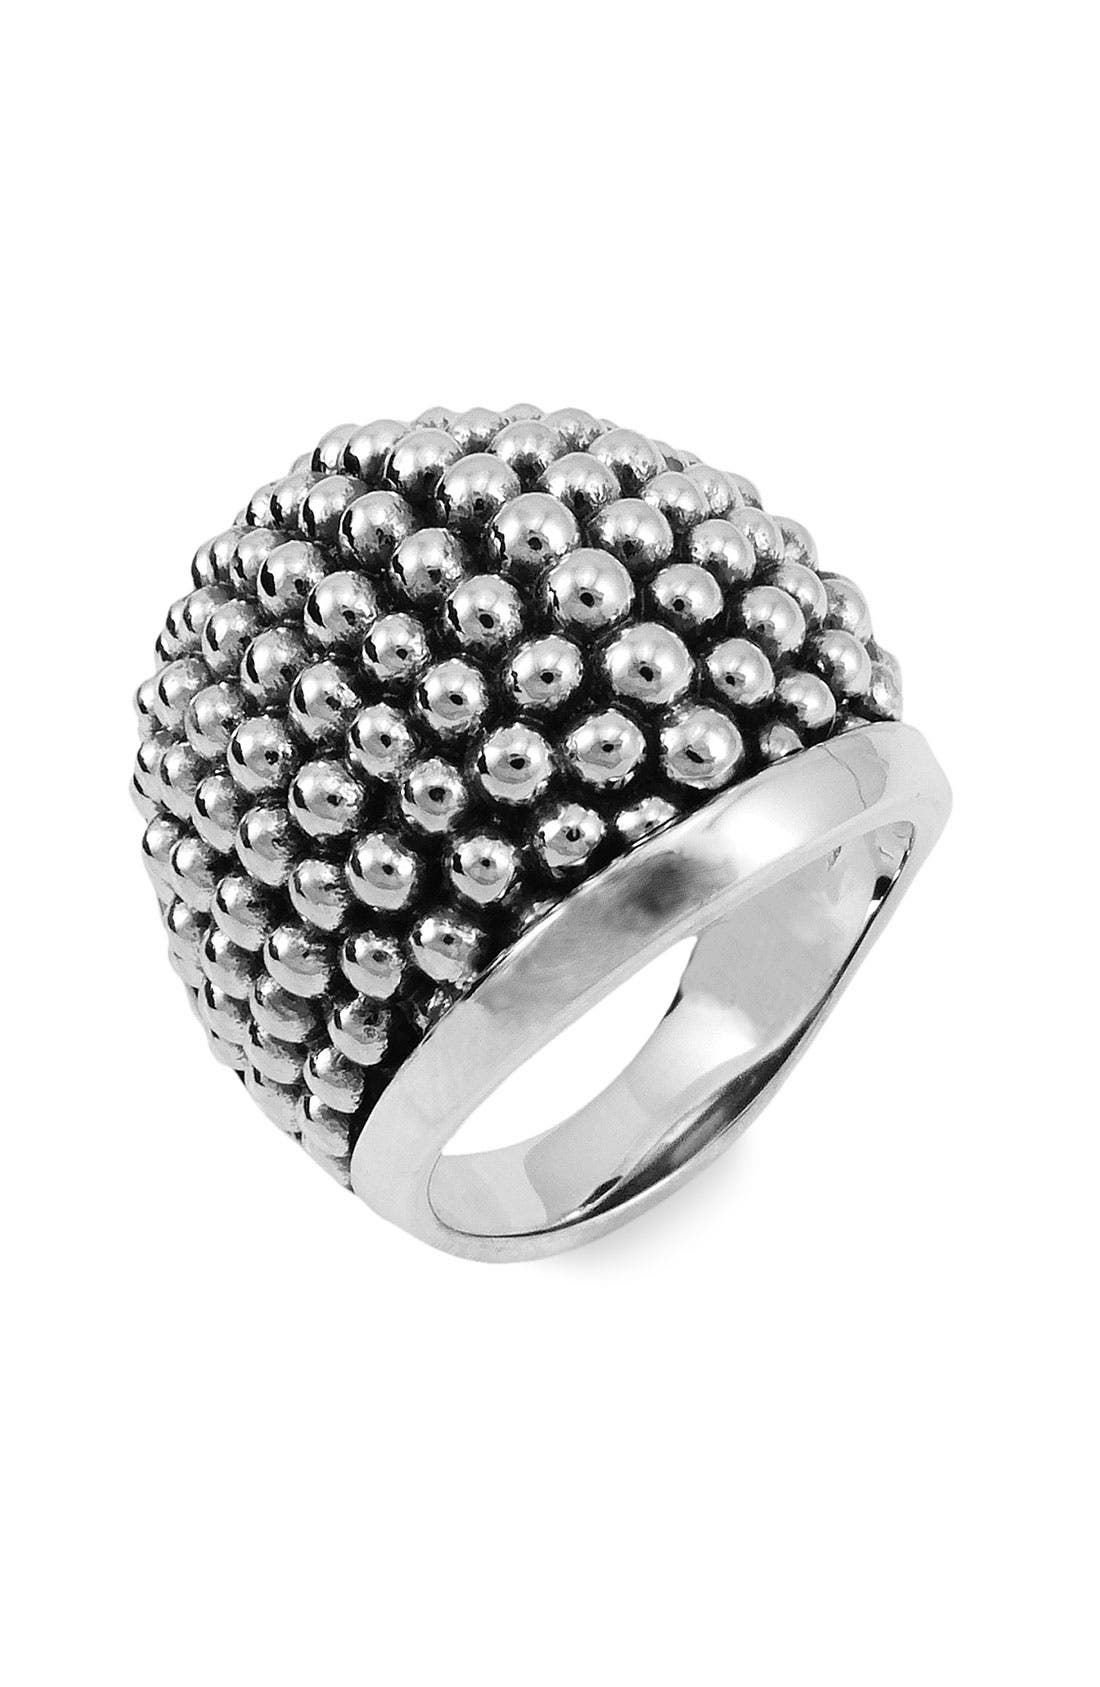 Alternate Image 1 Selected - LAGOS Sterling Silver Caviar Dome Ring